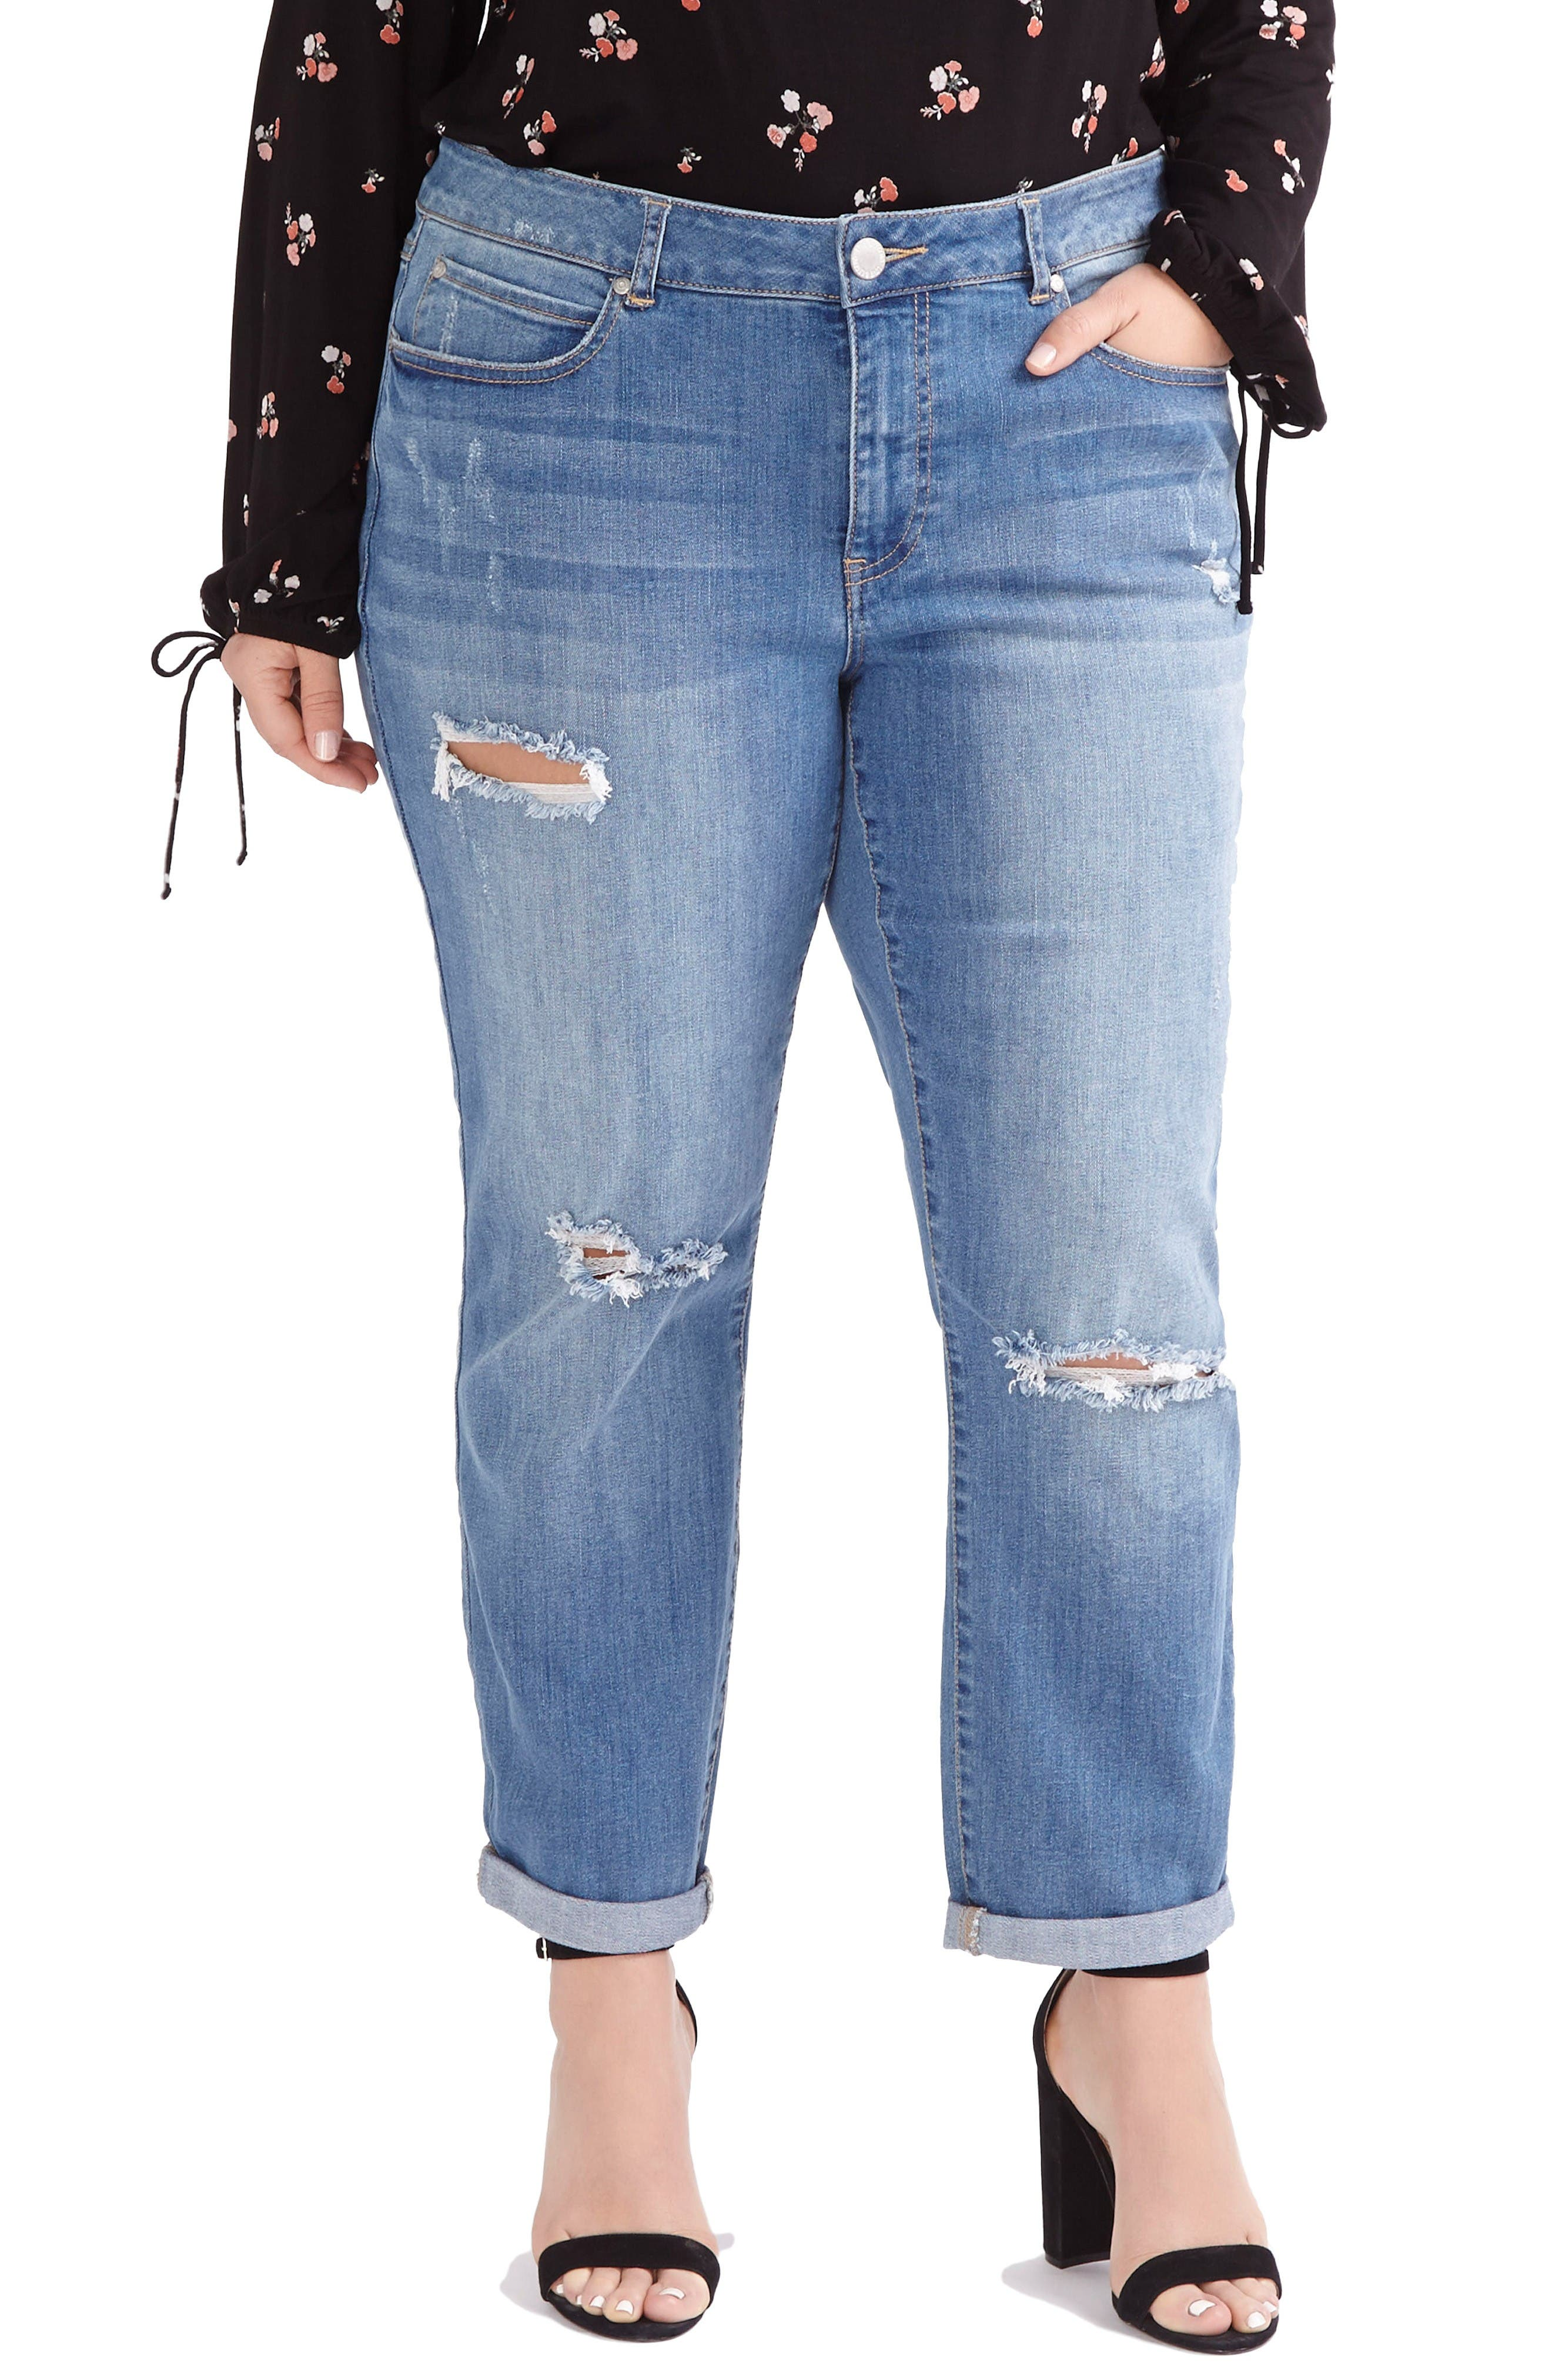 Alternate Image 1 Selected - ADDITION ELLE LOVE AND LEGEND Ripped Boyfriend Jeans (Plus Size)